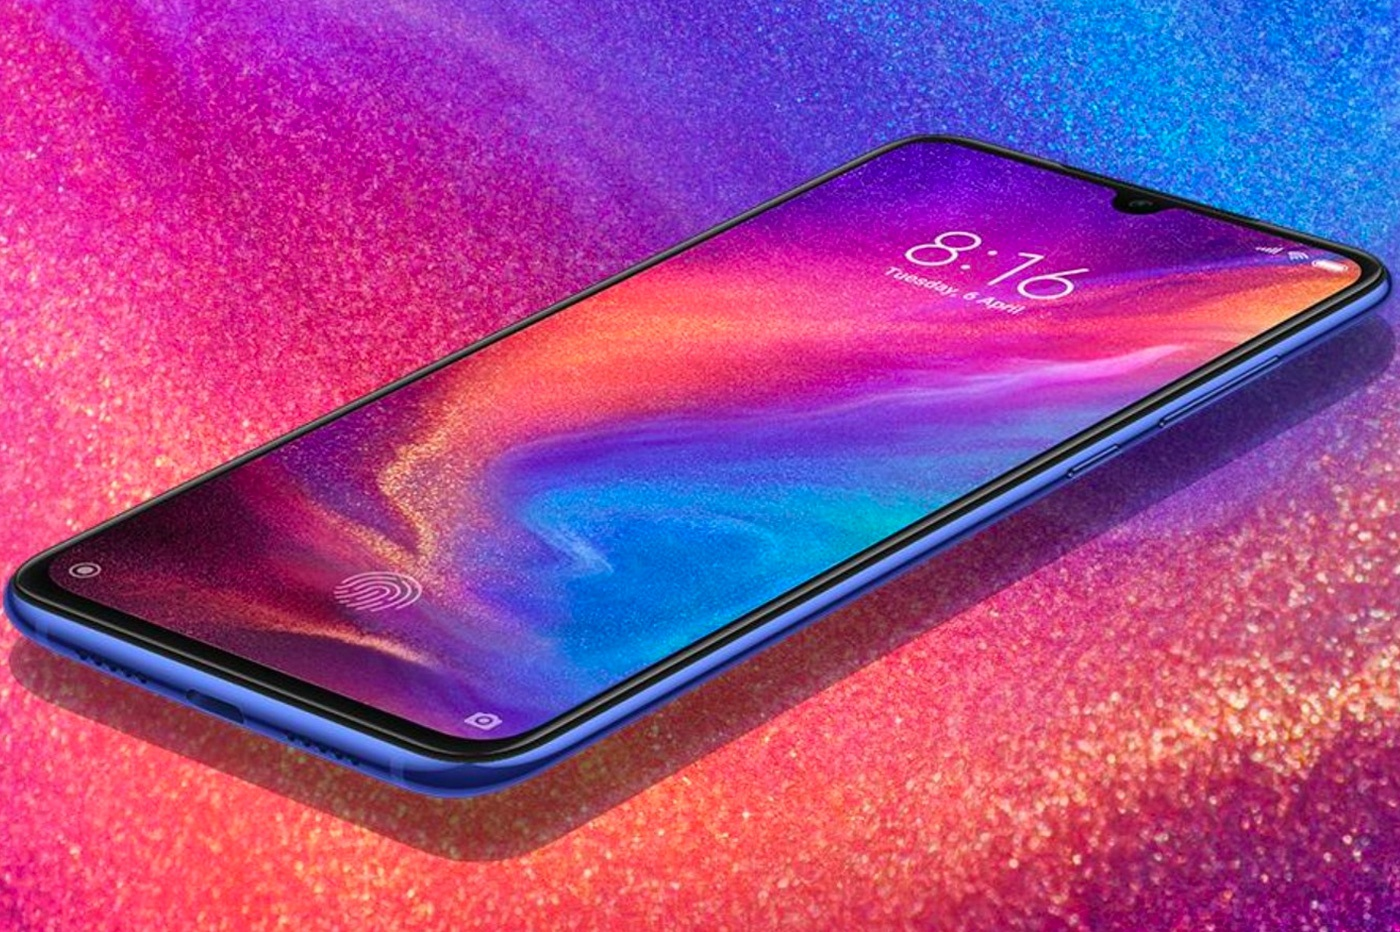 xiaomi mi 9 reconditionné